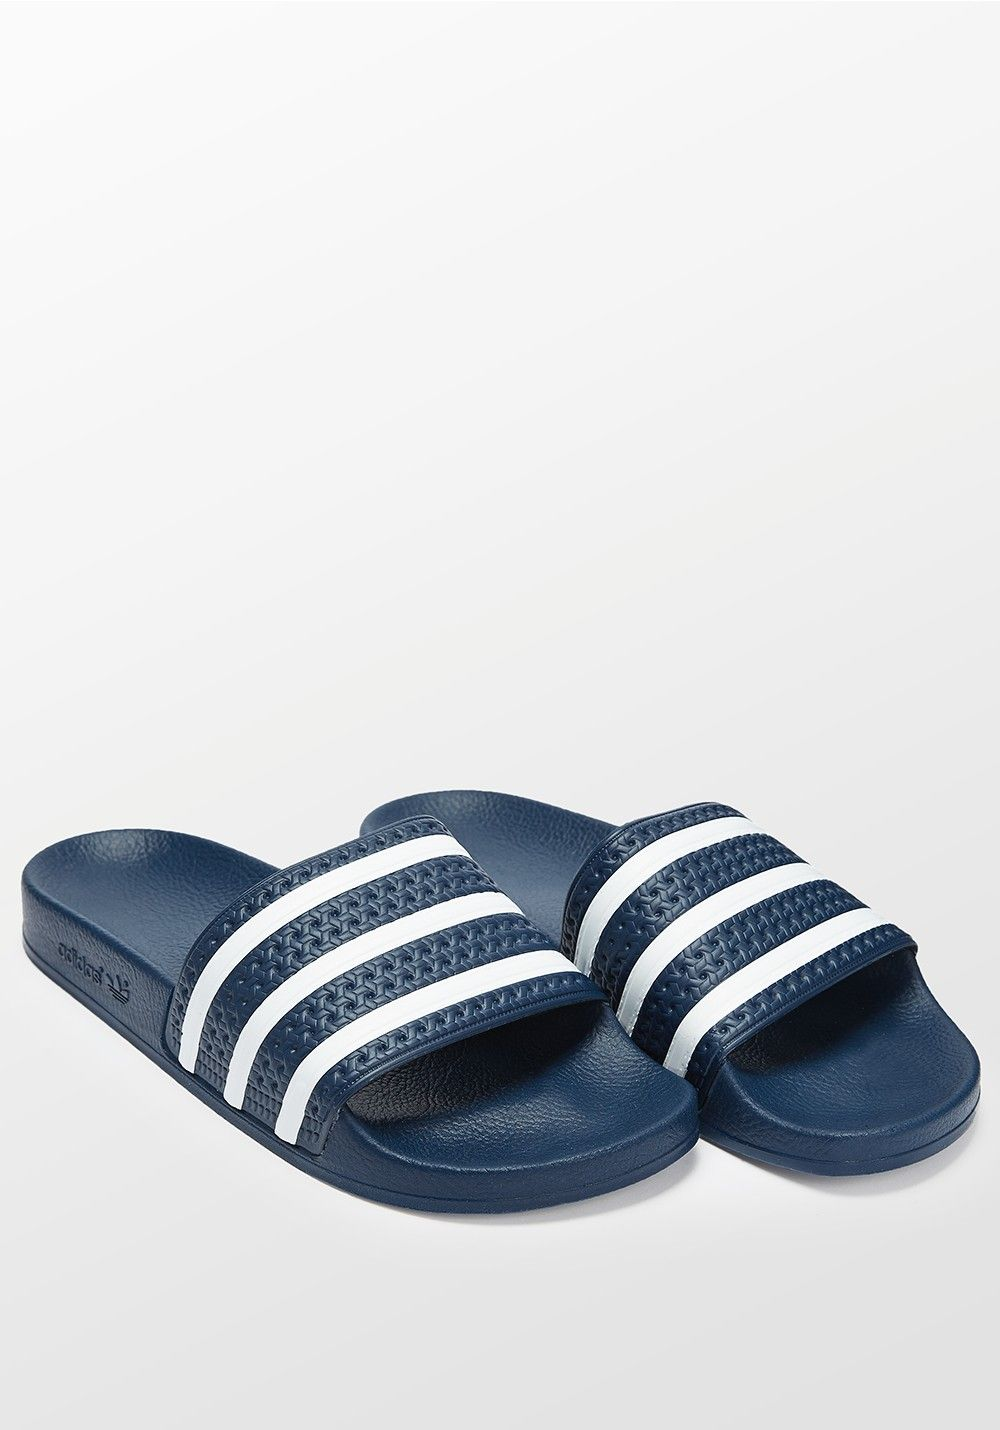 0b42e9346549 Adidas Adilette navy blue and white slides